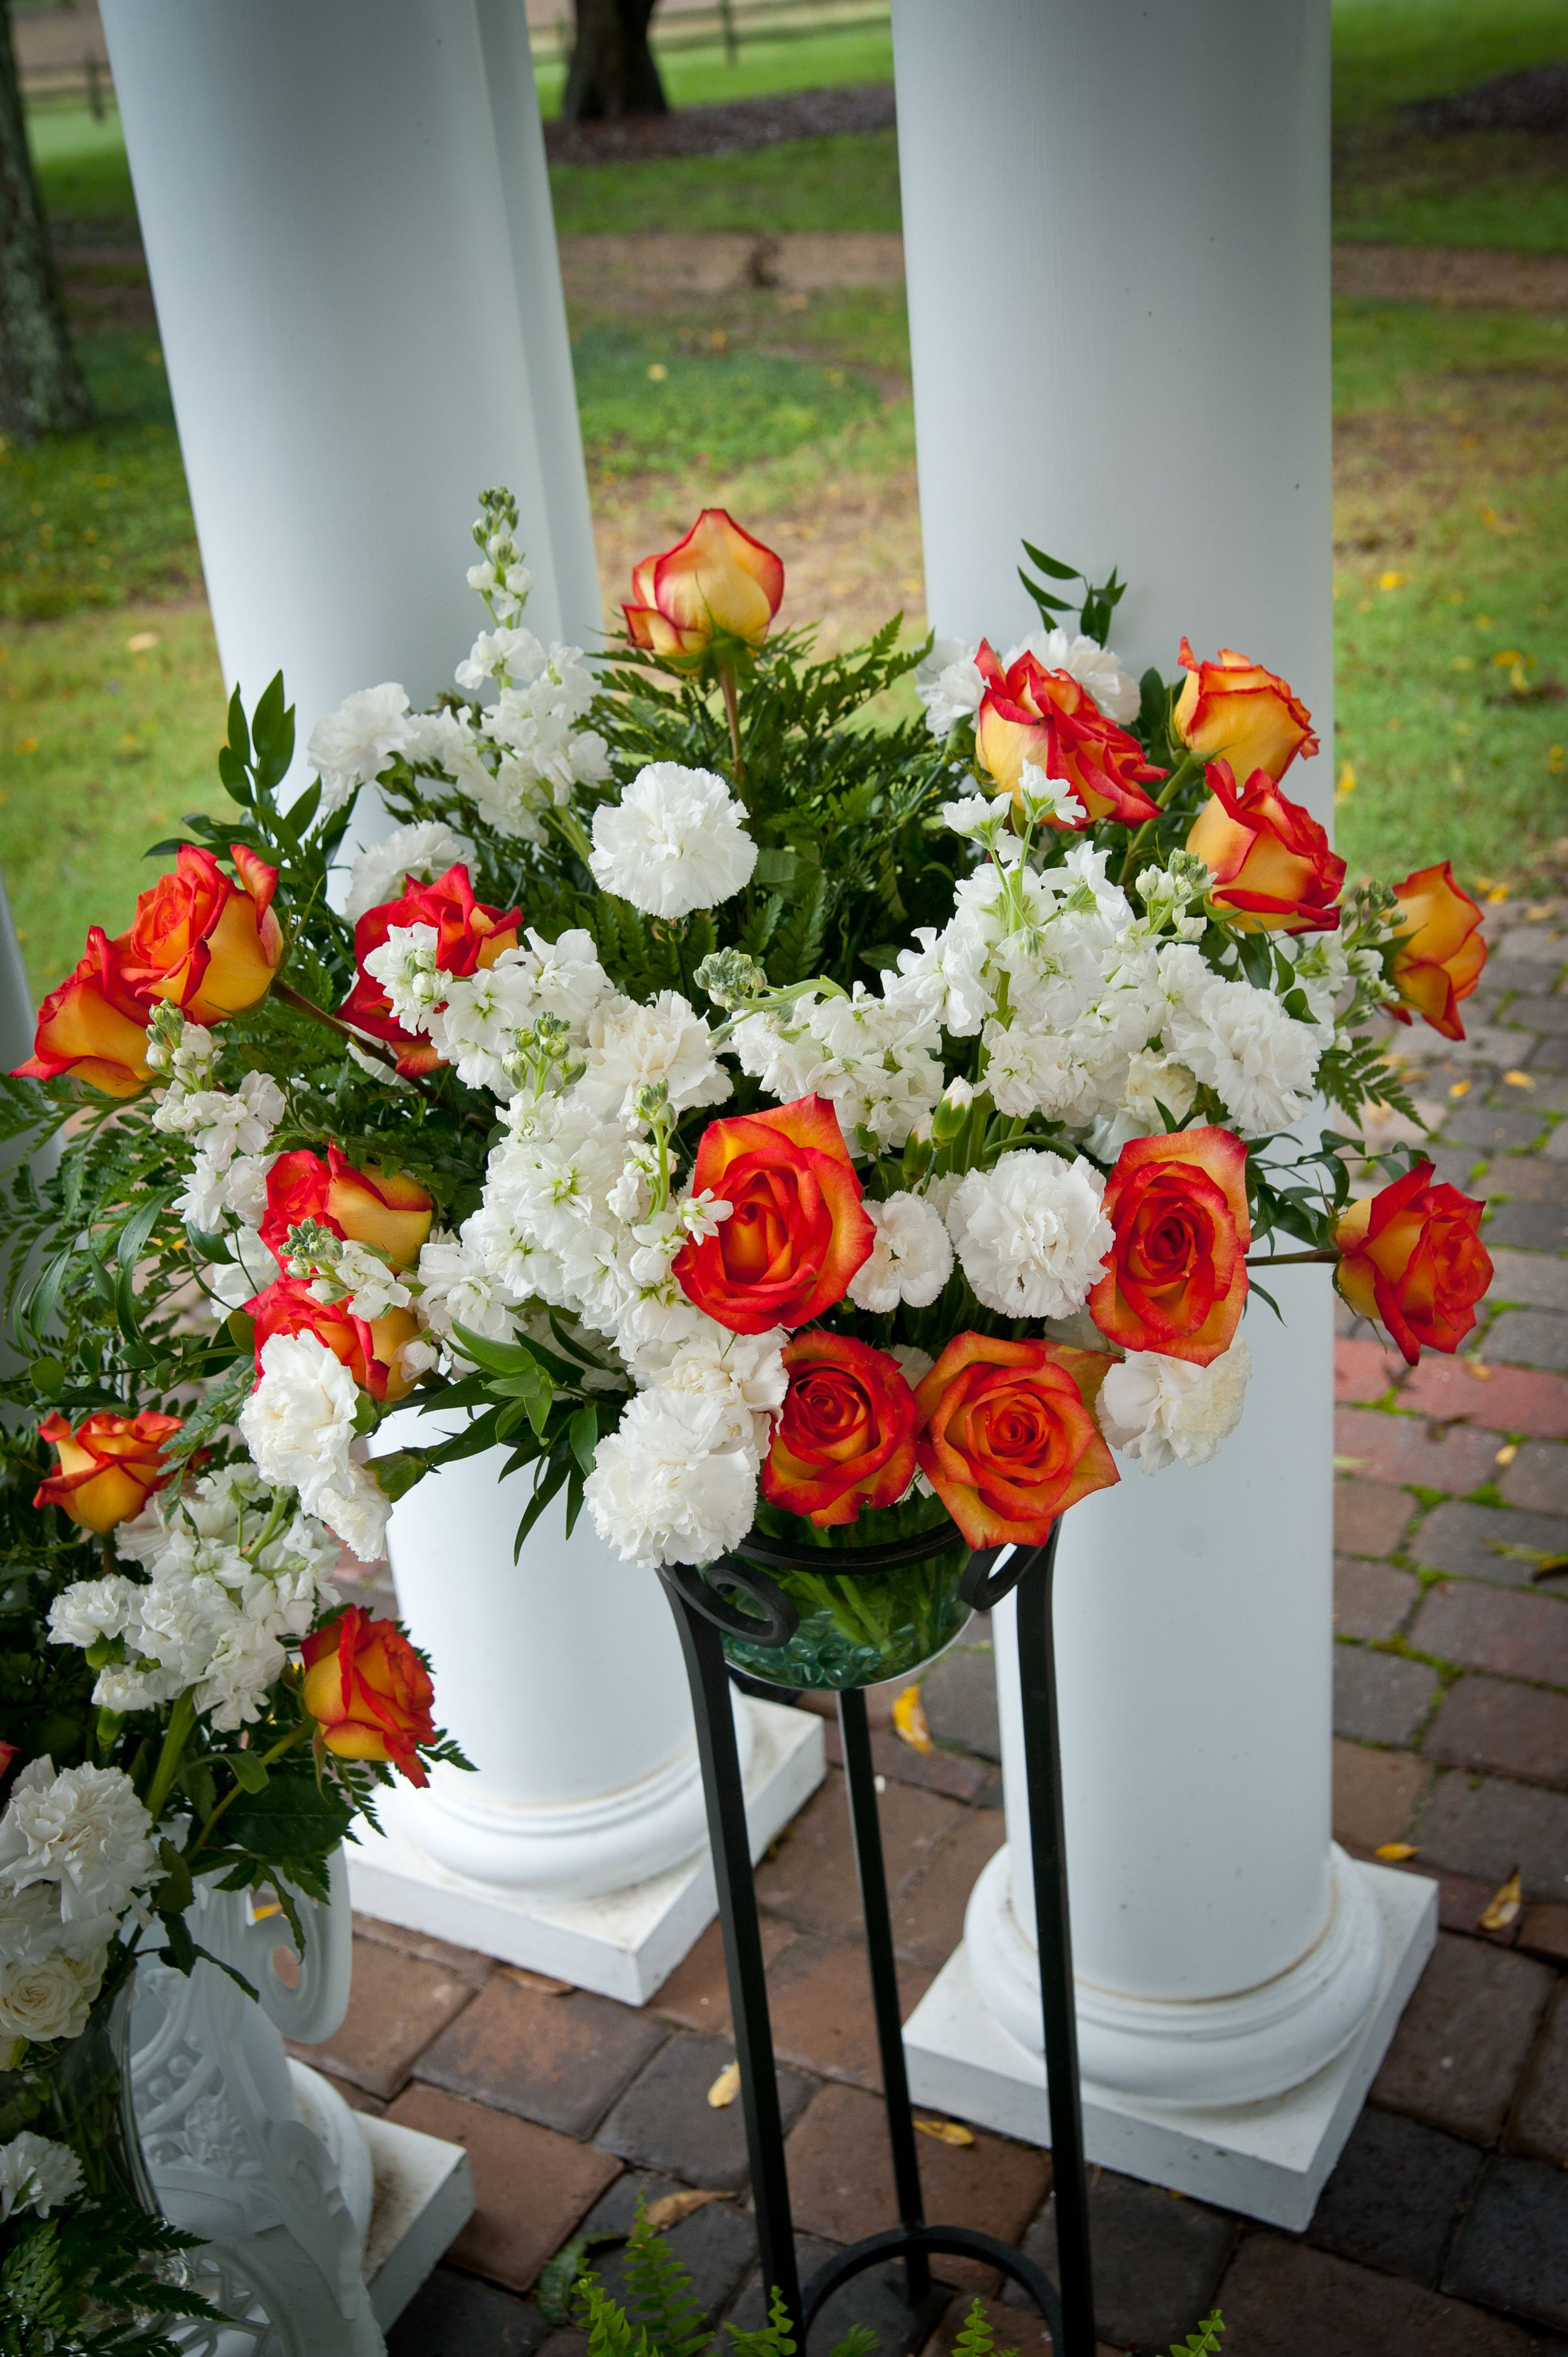 Orange roses with mixed white flowers in wedding ceremony decor. Erin and Dan's wedding at Lenora's Legacy. Image credit: Famzing.